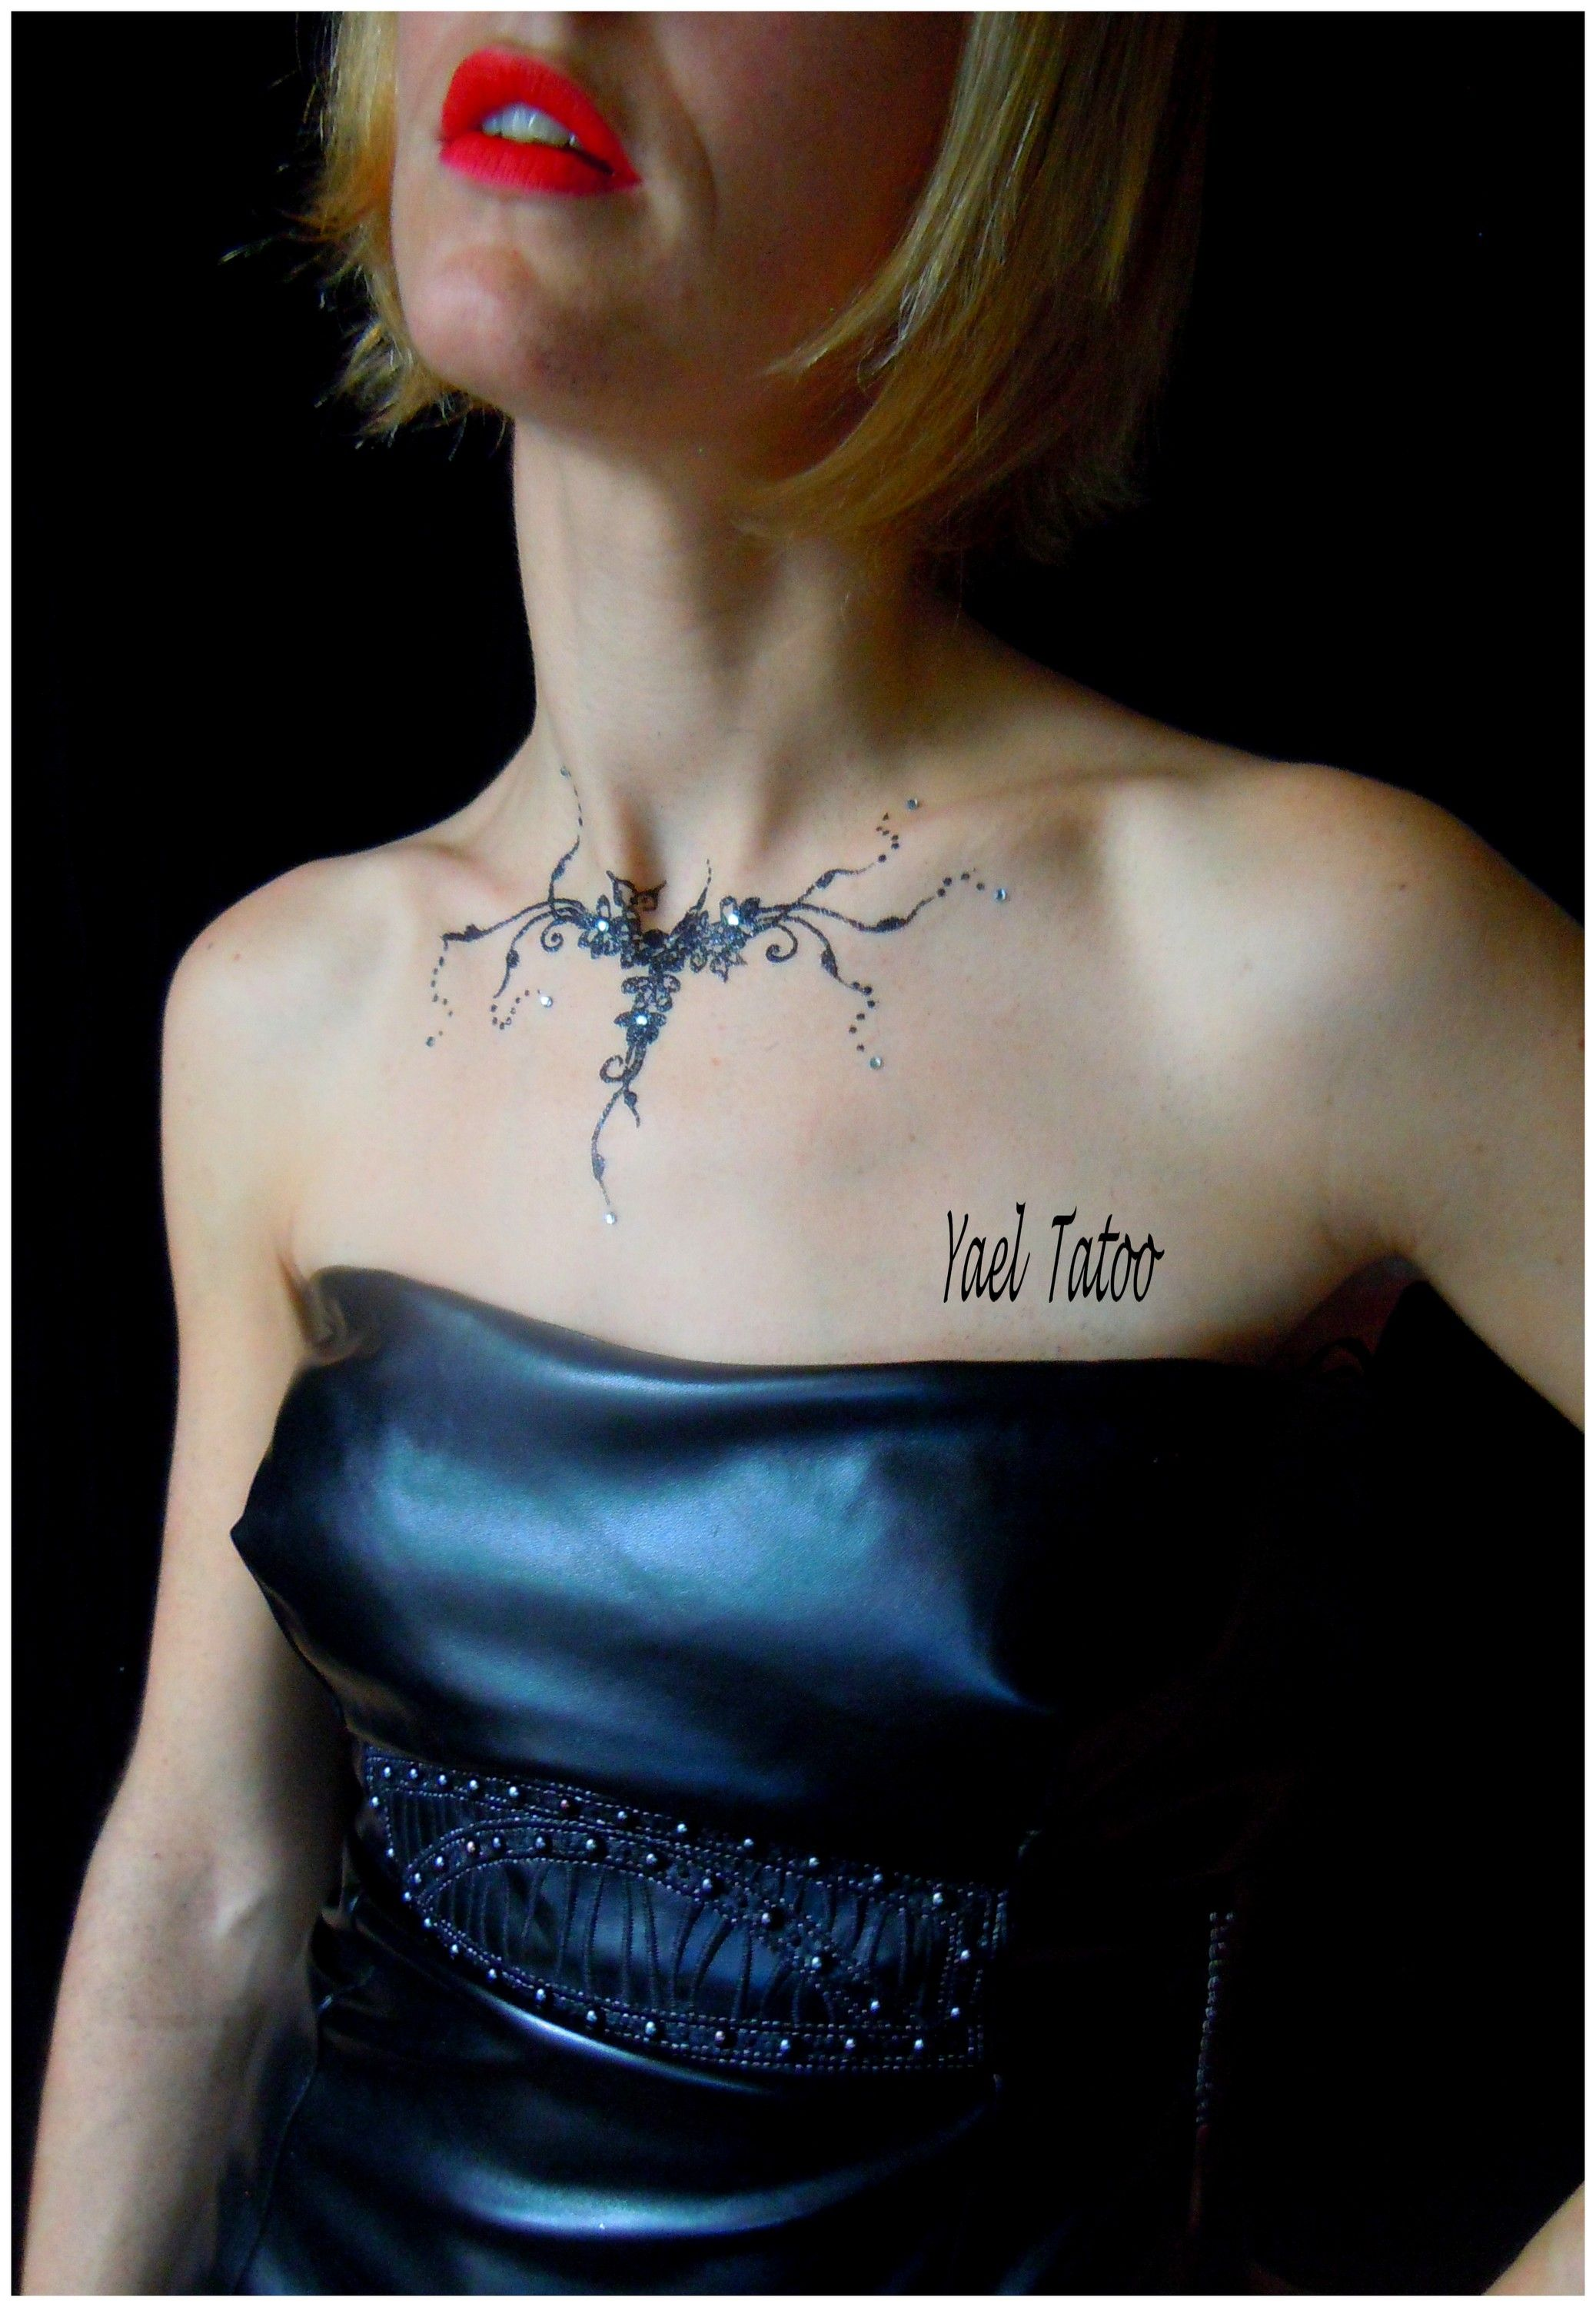 Tattoo Lightning: a beautiful figure on the body or an ancient amulet